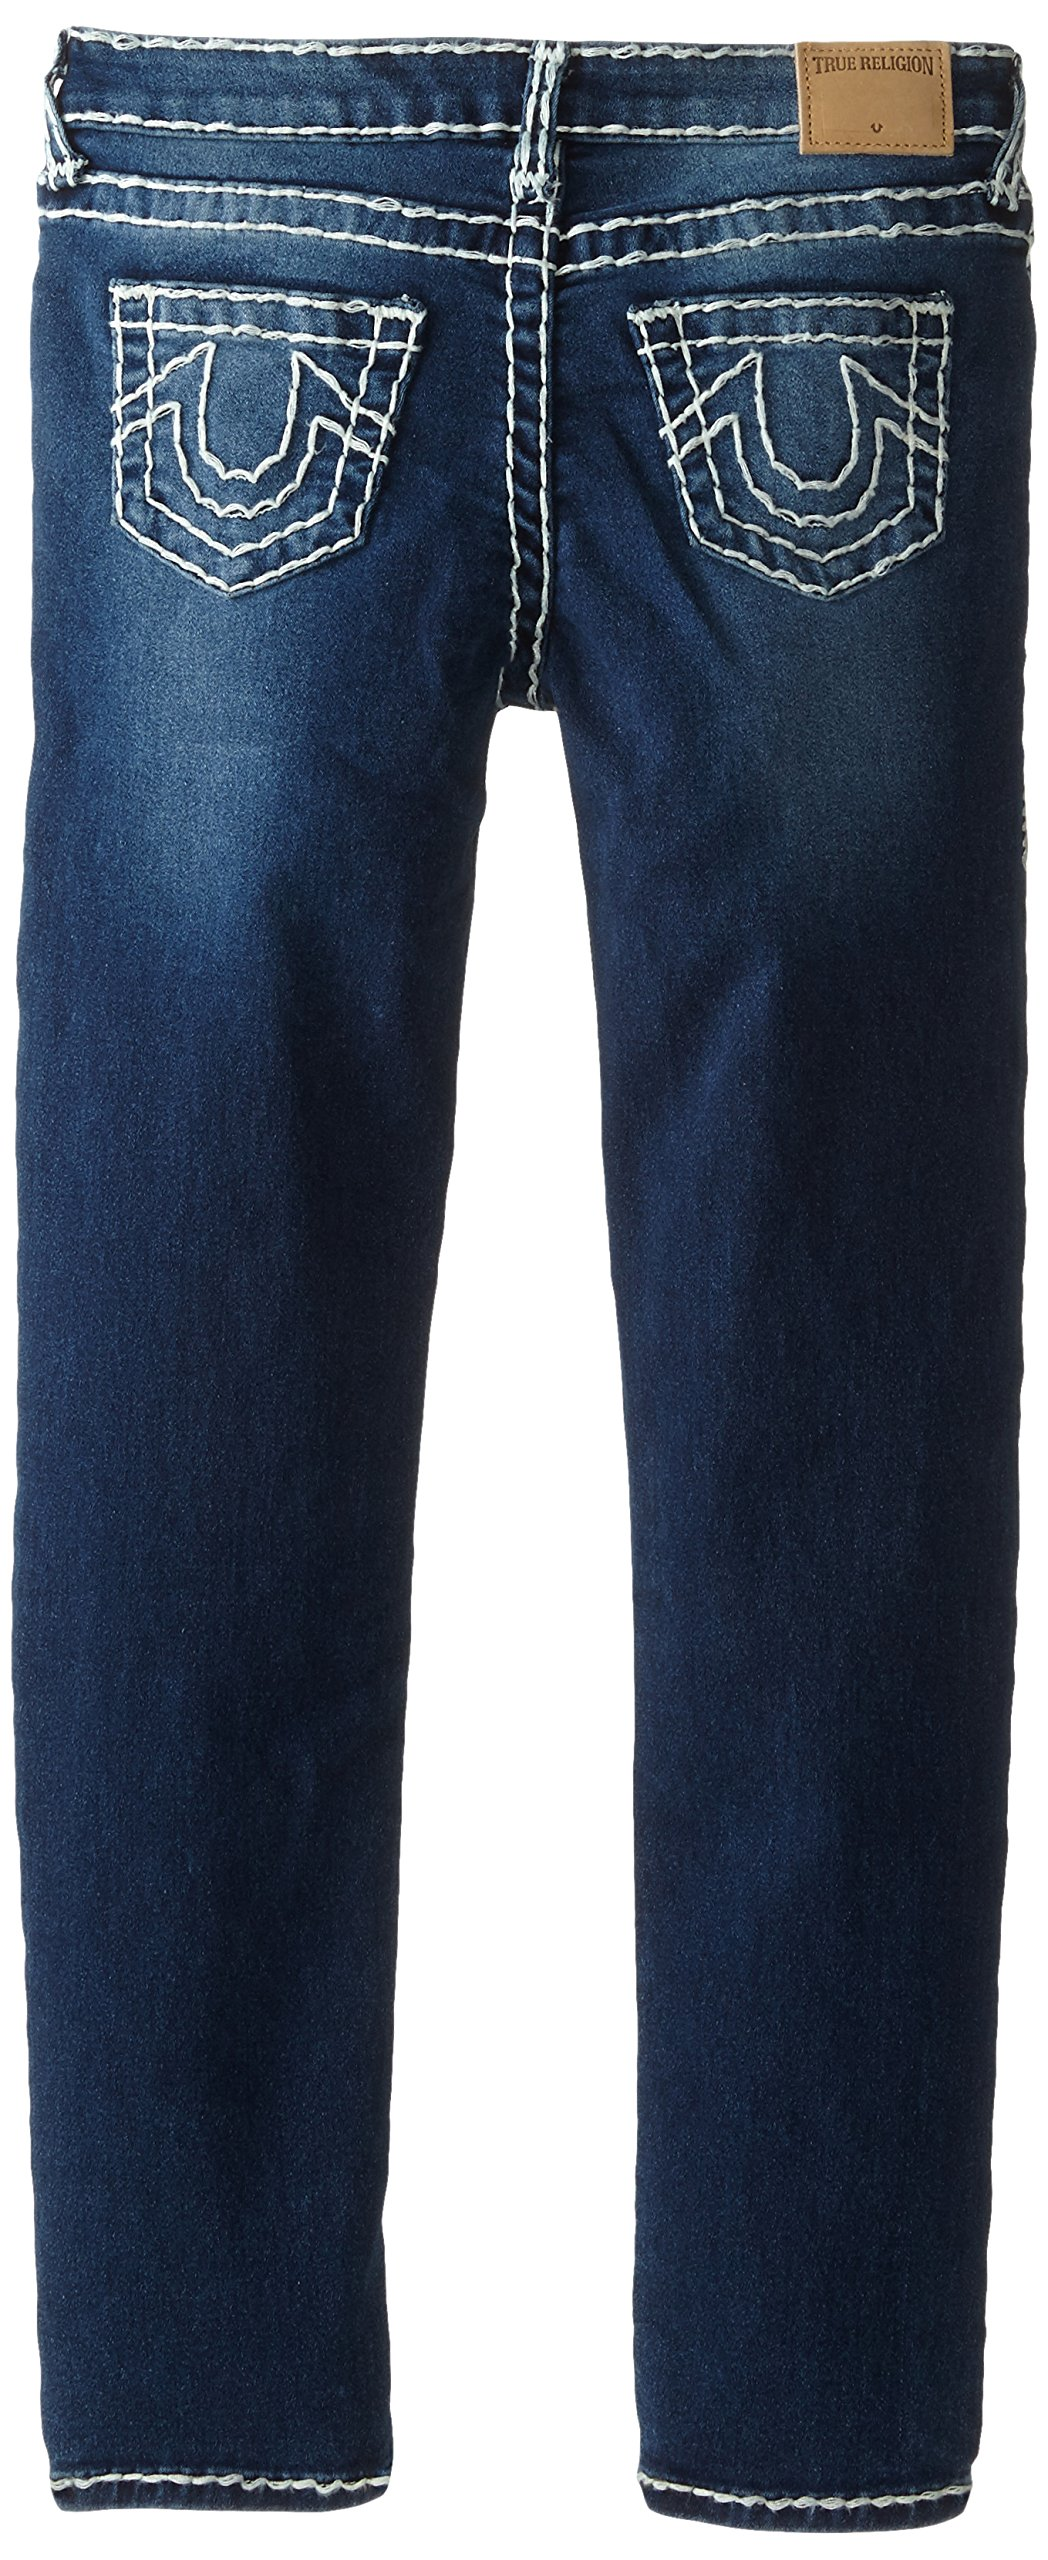 True Religion Girls' Casey Skinny Jean-Natural Super T, Ancient, 8 by True Religion (Image #2)